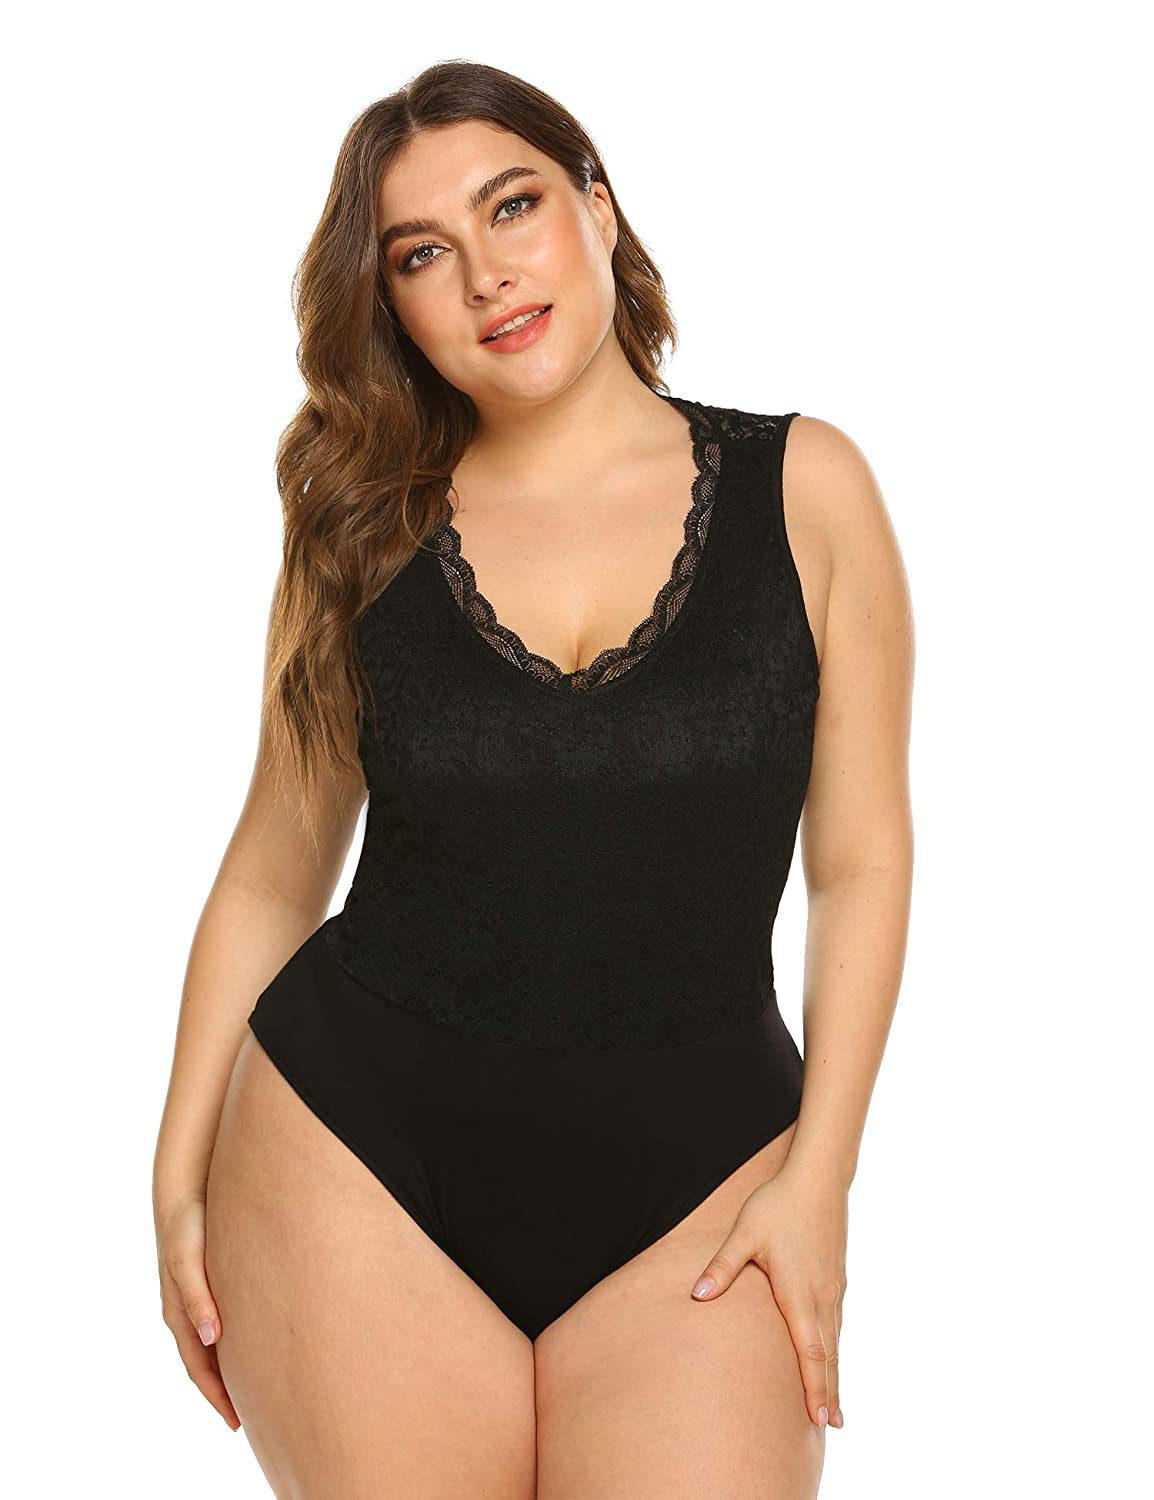 IN VOLAND Women s Plus Size Sexy Party Lace Patchwork Stretchy Bodysuits  Leotards Tops(16W-24W) at Amazon Women s Clothing store  c6378be20